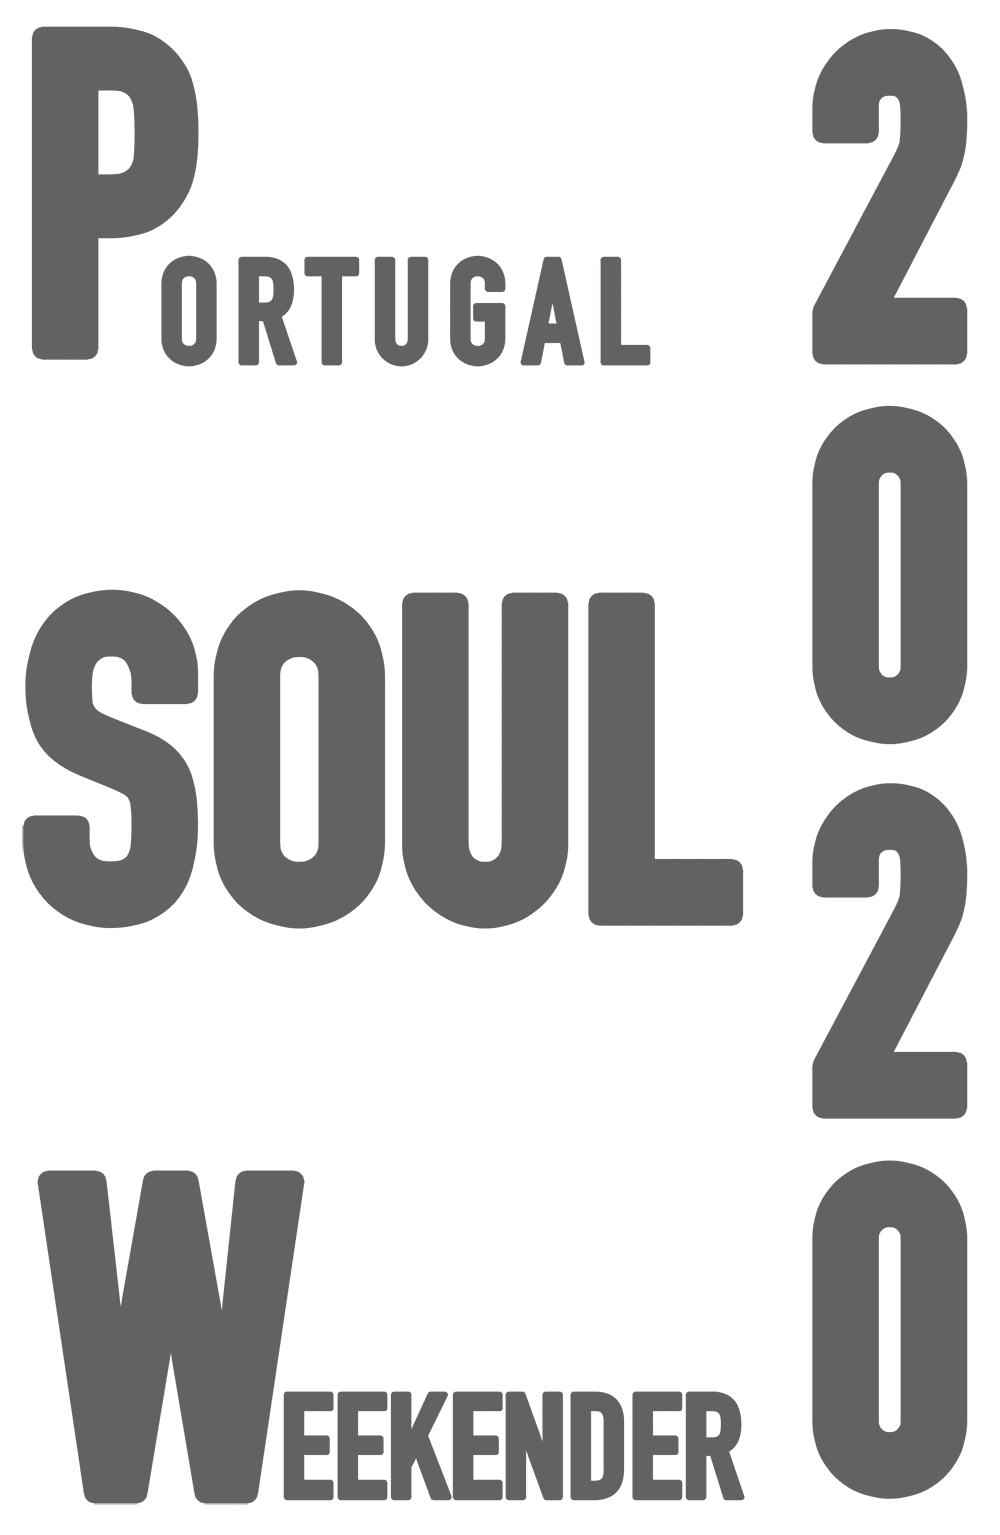 Portugal-soul-weekender-logo-new-10 copy